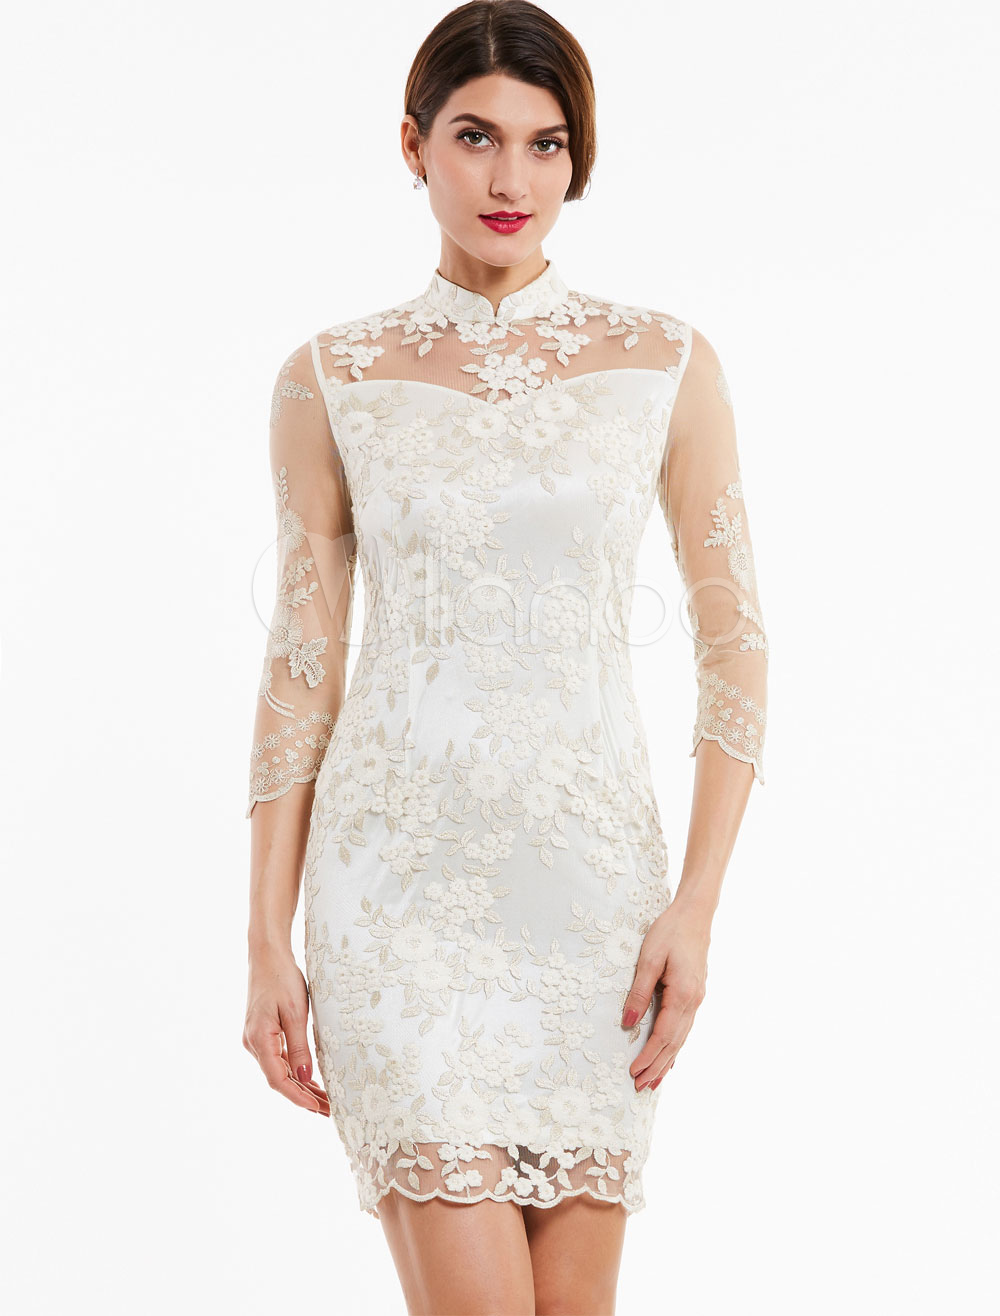 Buy Wedding Guest Dresses Lace Ivory Short Mother Dress Long Sleeve Stand Collar Illusion Sheath Column Cocktail Dresses for $74.79 in Milanoo store